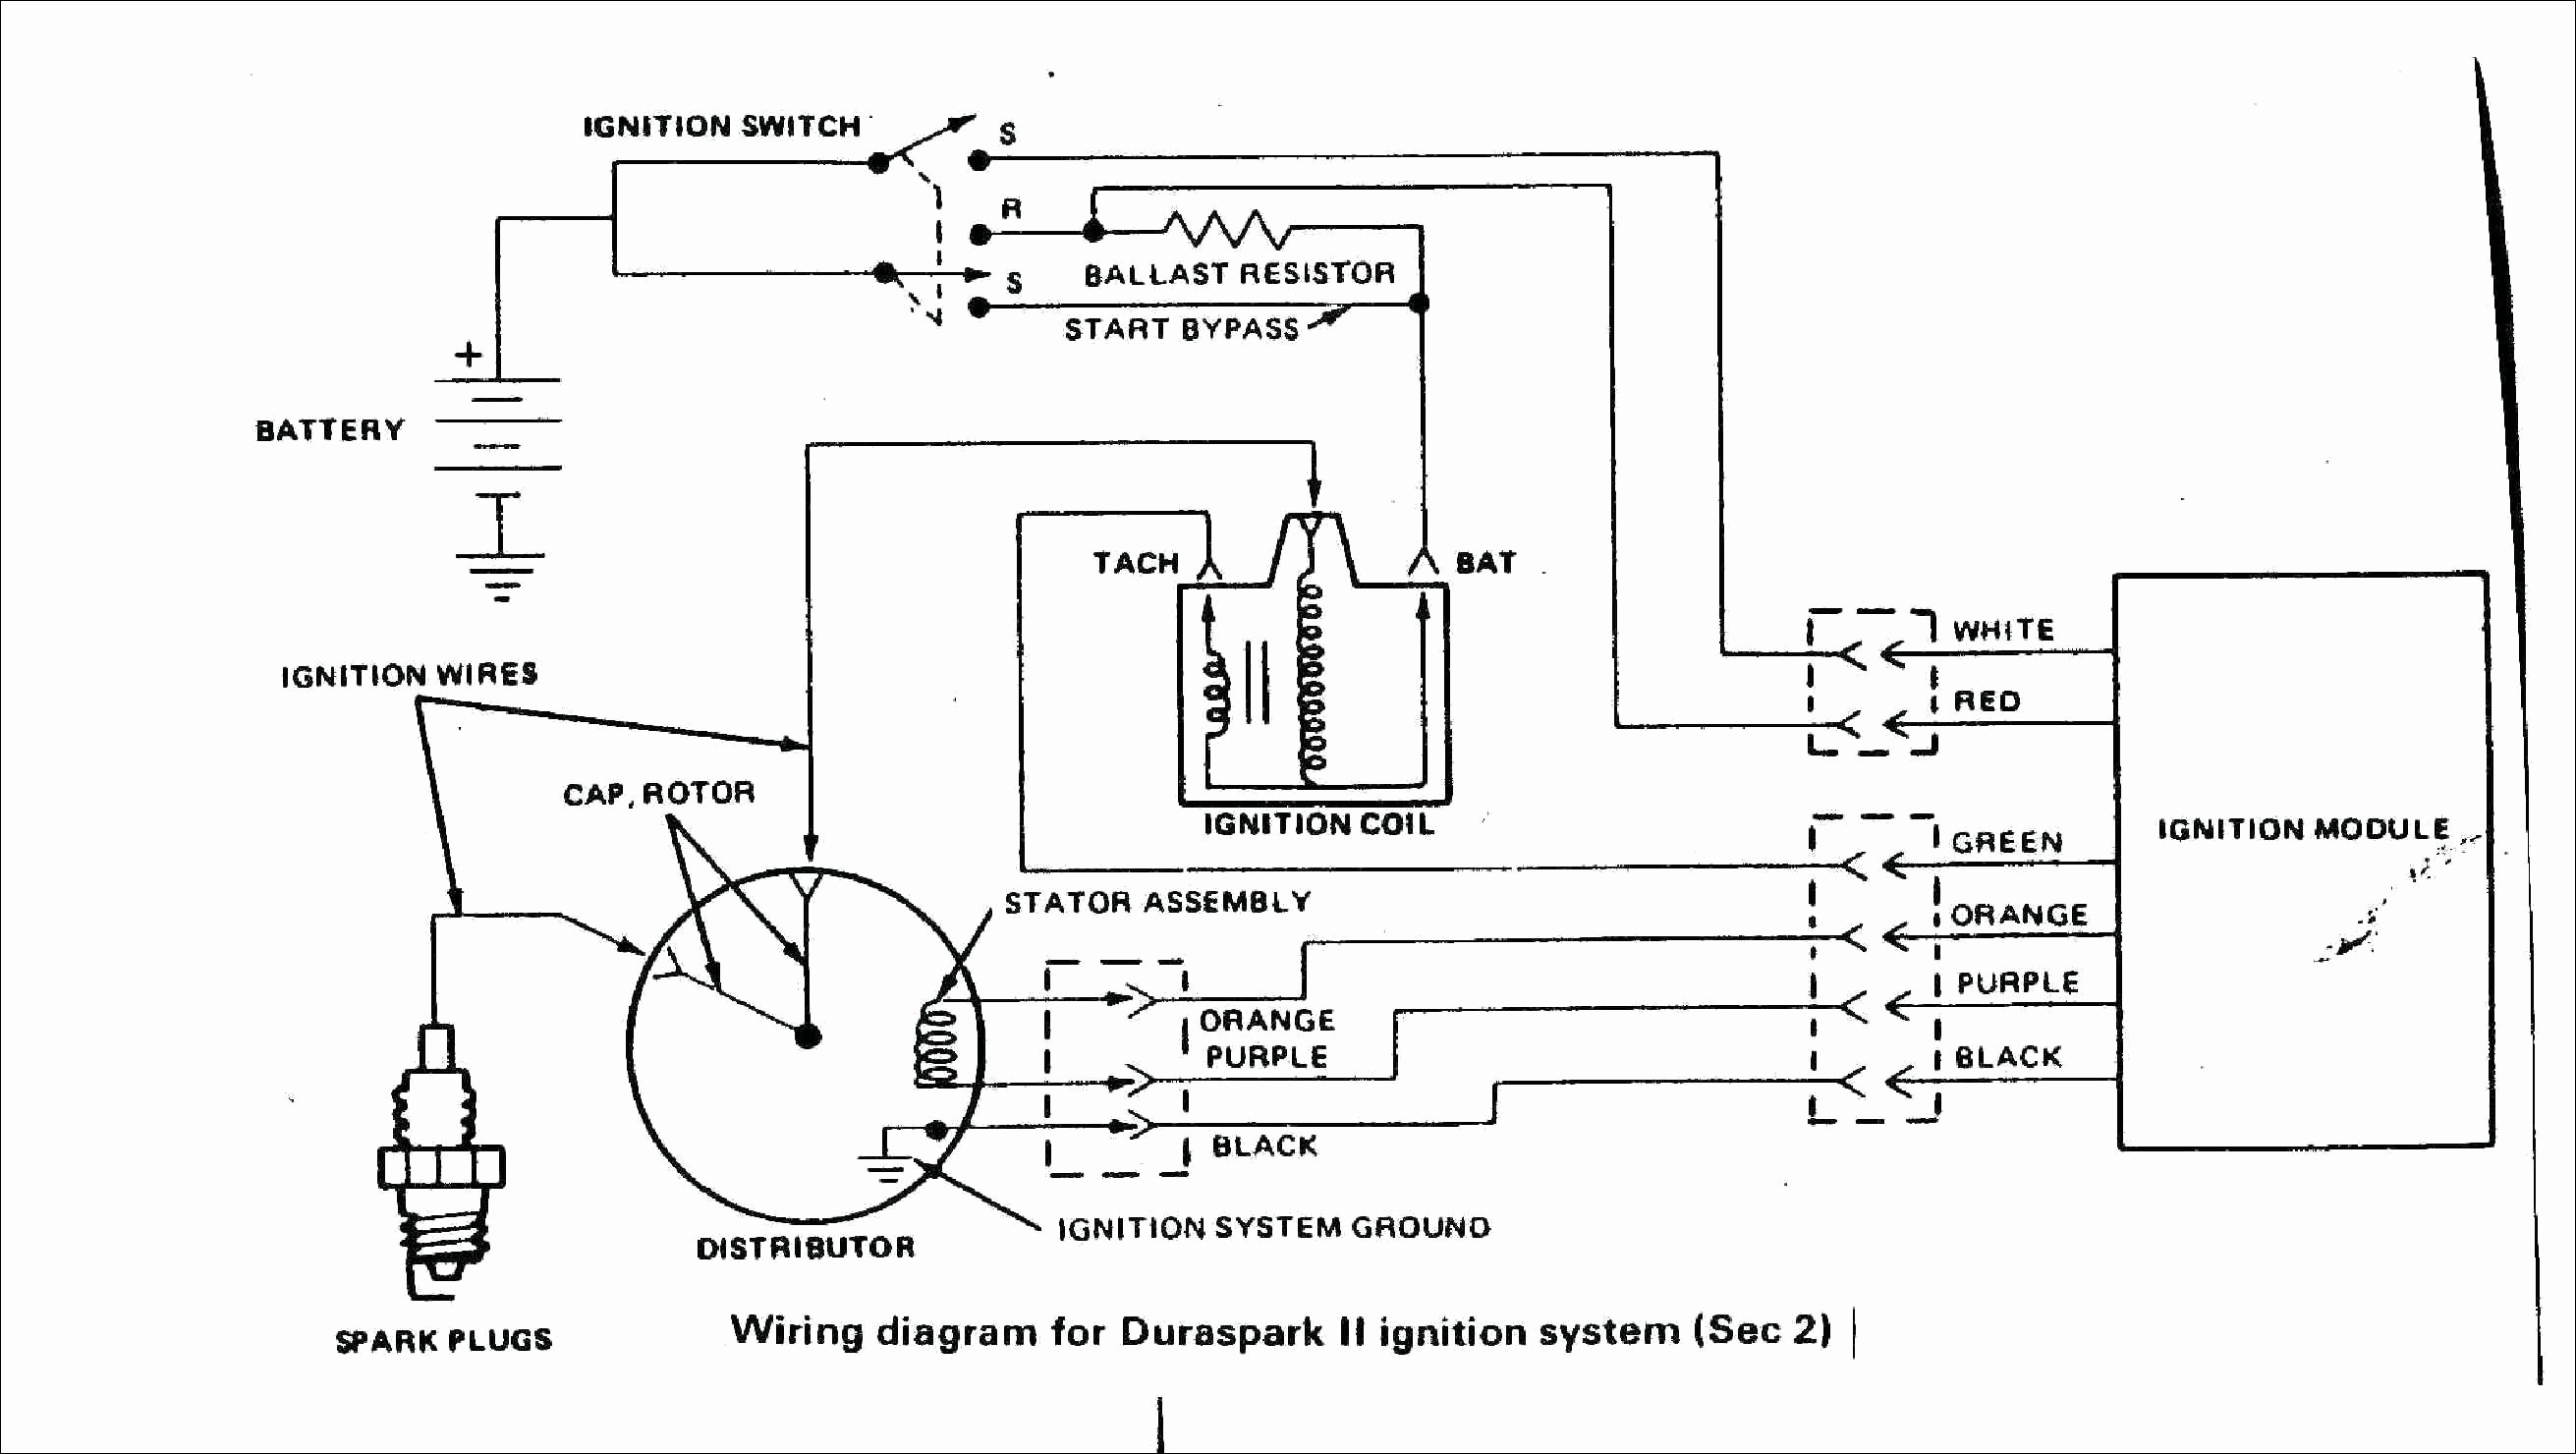 Ford Hei Distributor Wiring Diagram Awesome 1991 E4od Od button Wiring ford Truck Enthusiasts forums –